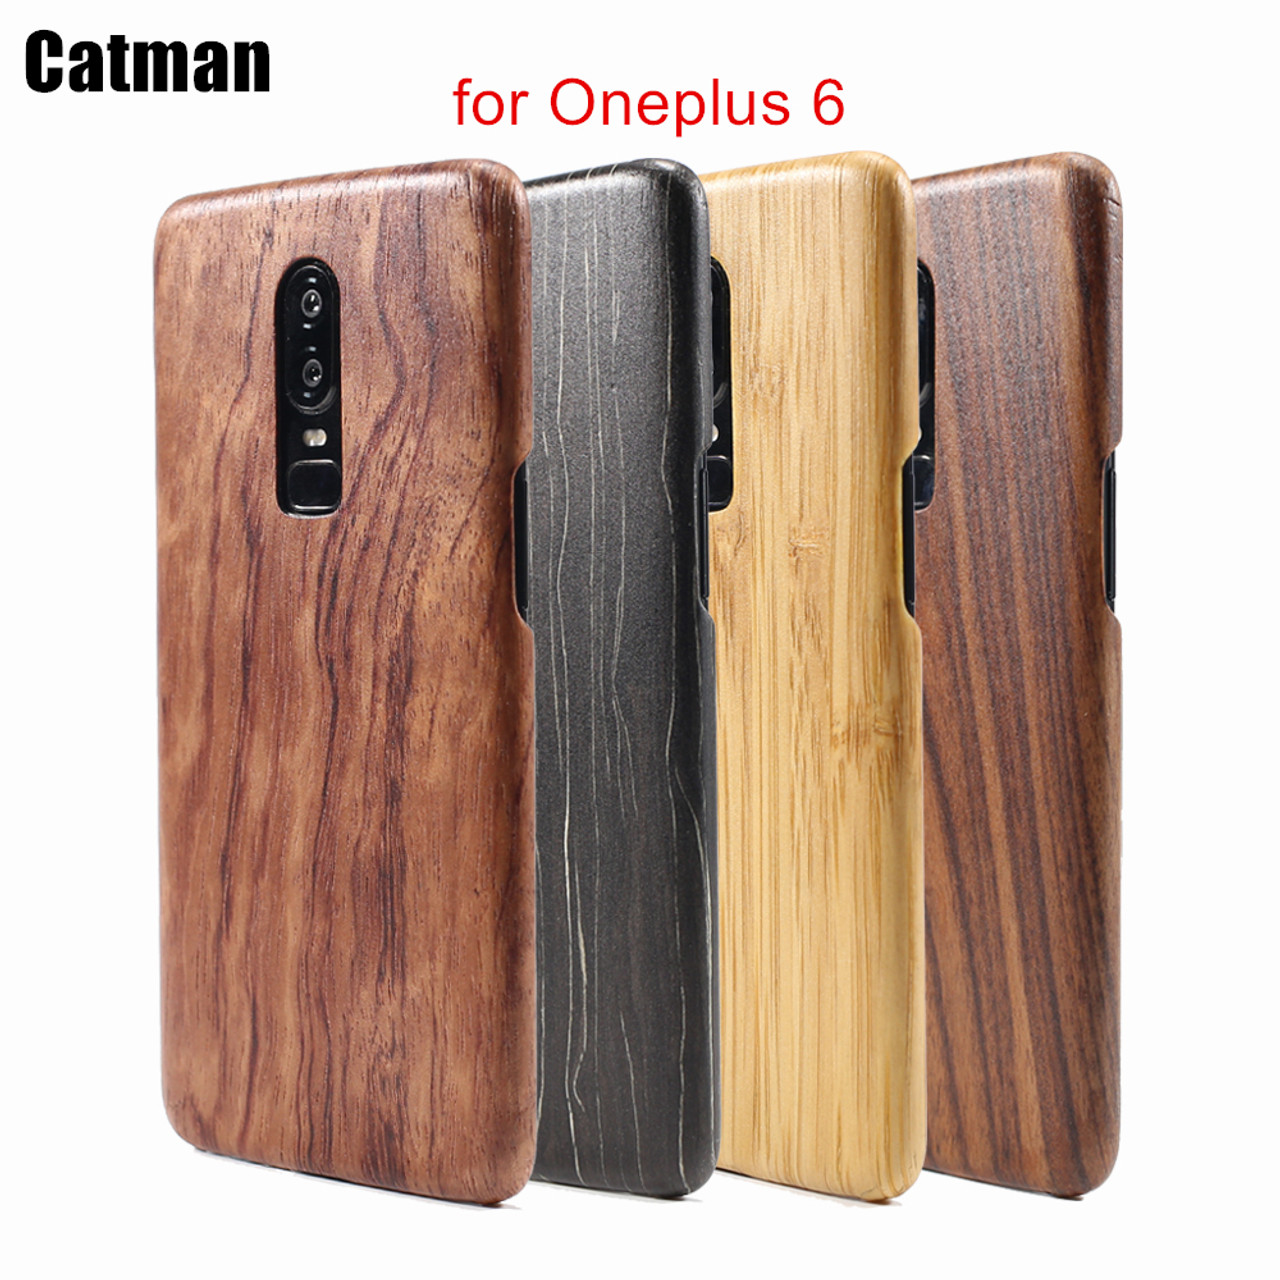 cheaper 5faef 801ea oneplus 6 case catman original genuine real wood funda bamboo rosewood  luxury back cover phone shell one plus 6 case